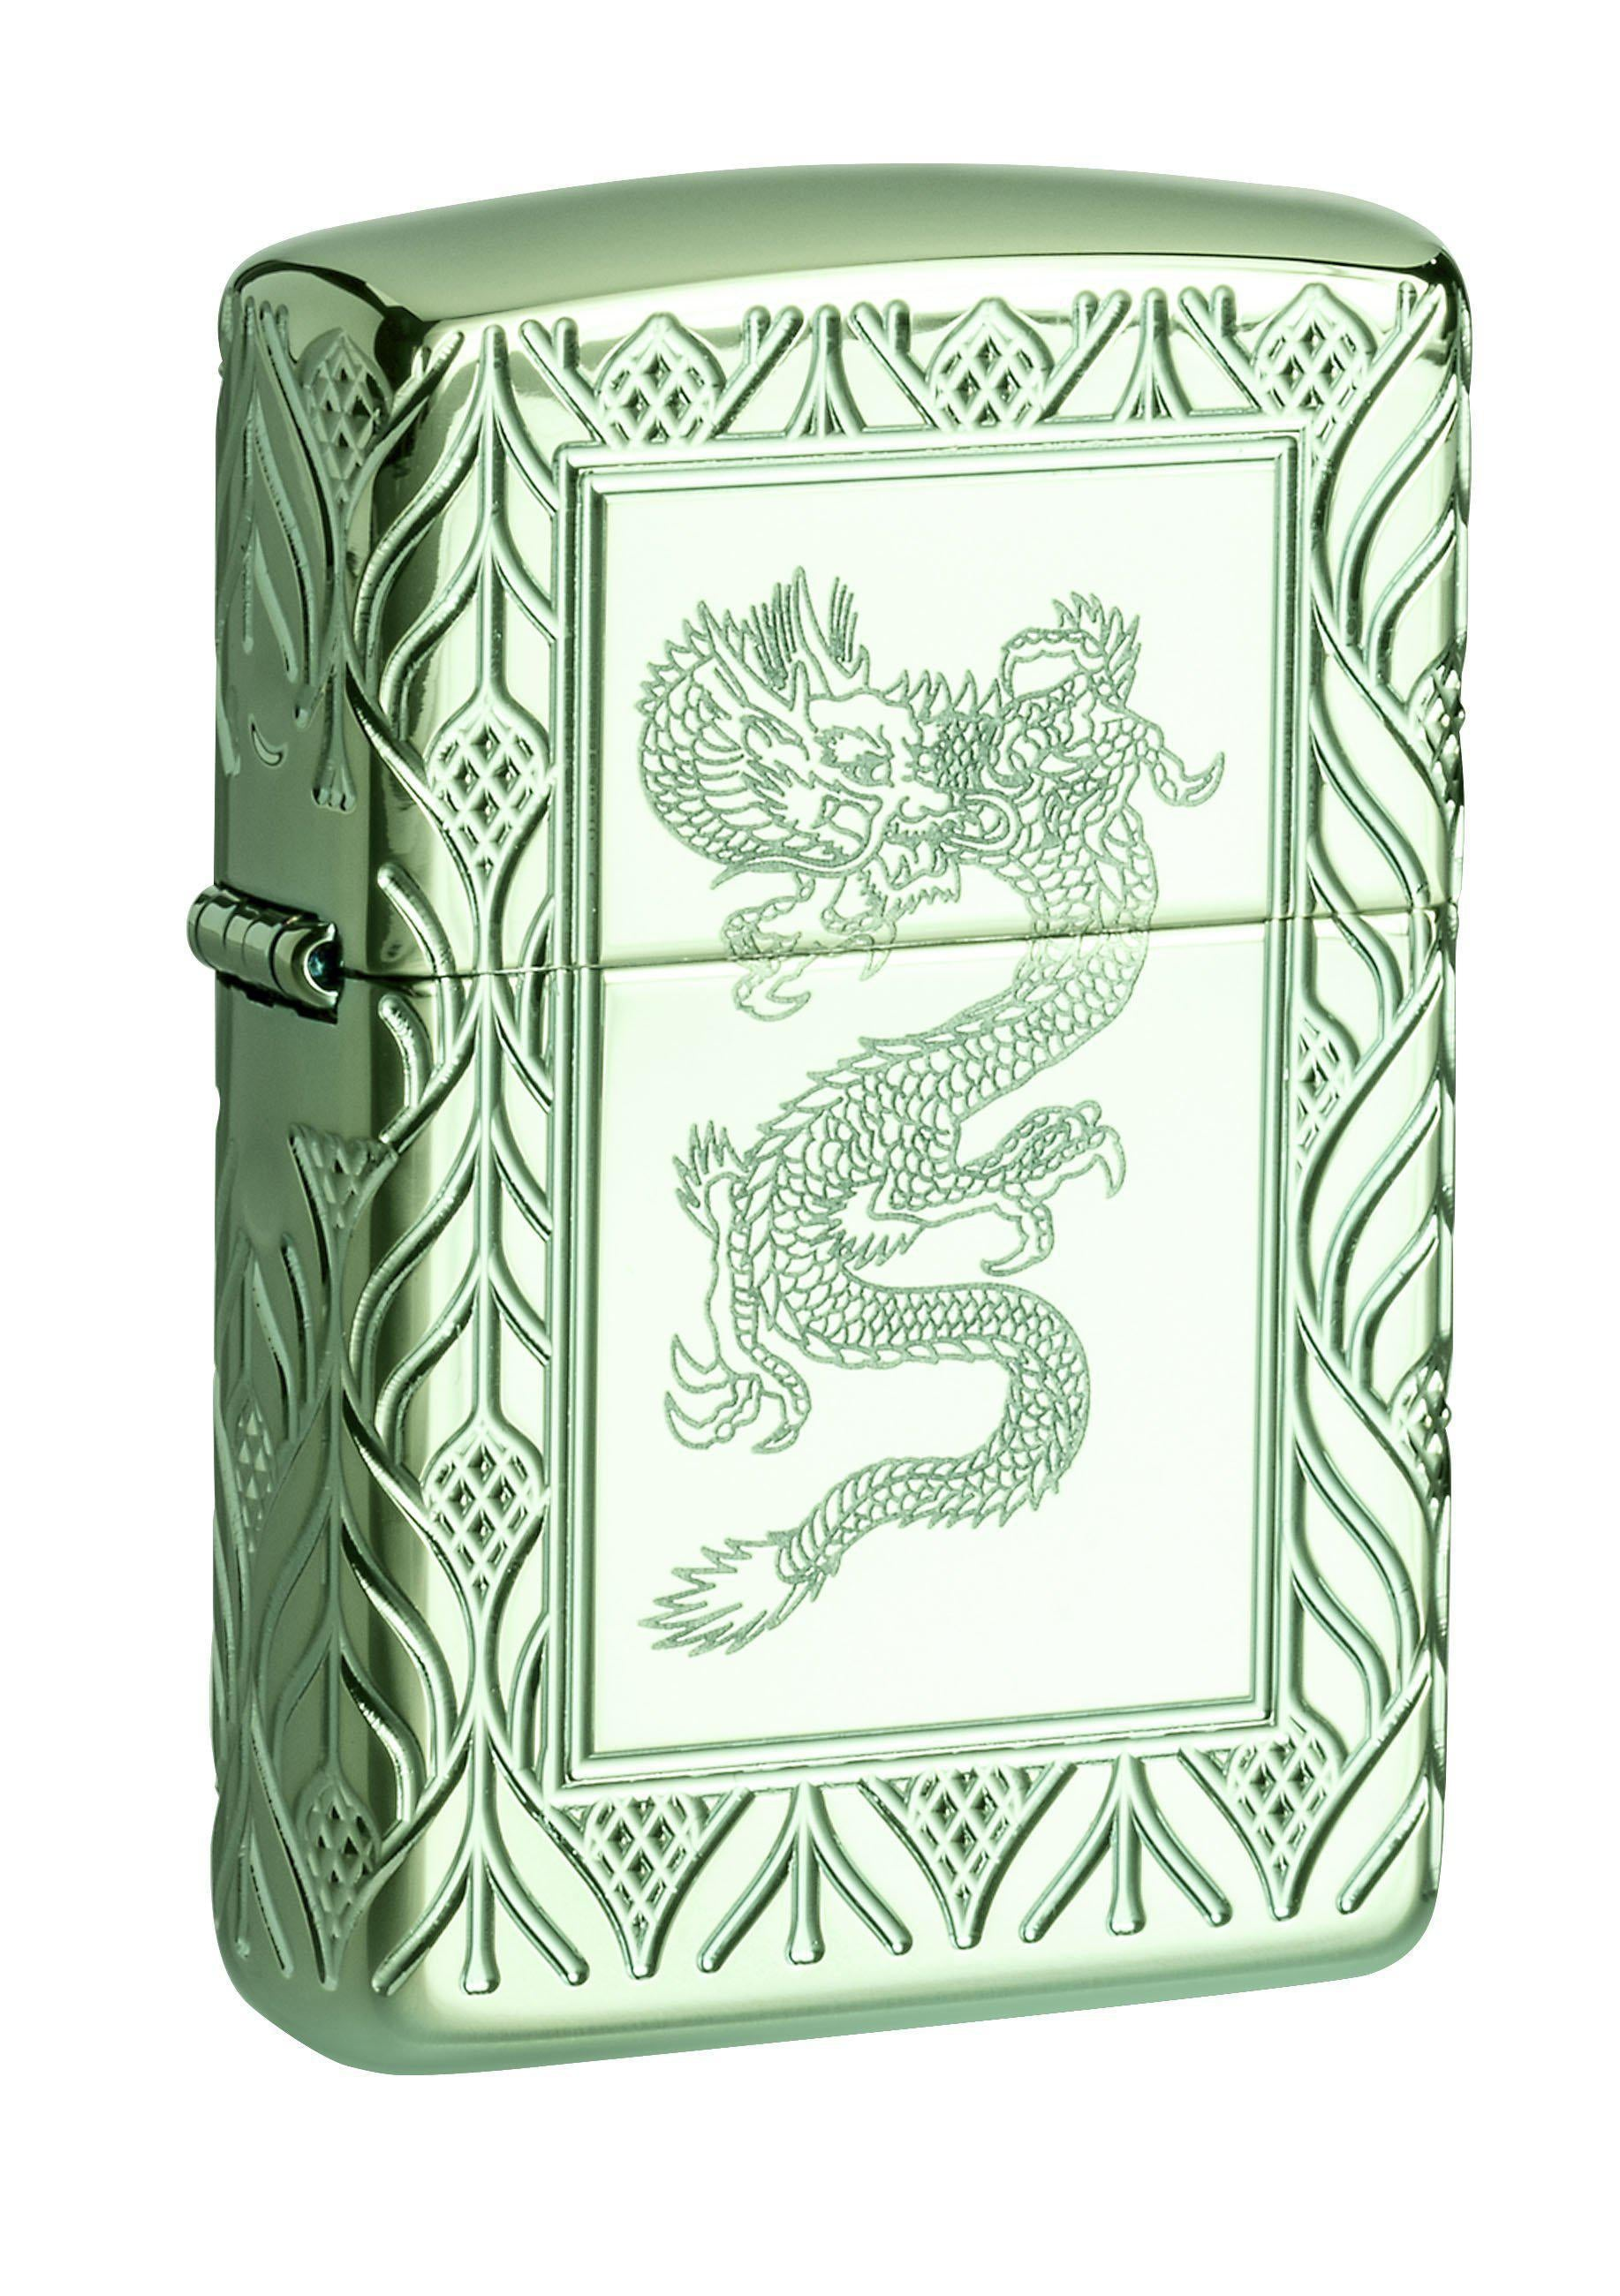 Zippo Lighter: Armor MultiCut Elegant Dragon - High Polish Green 49054